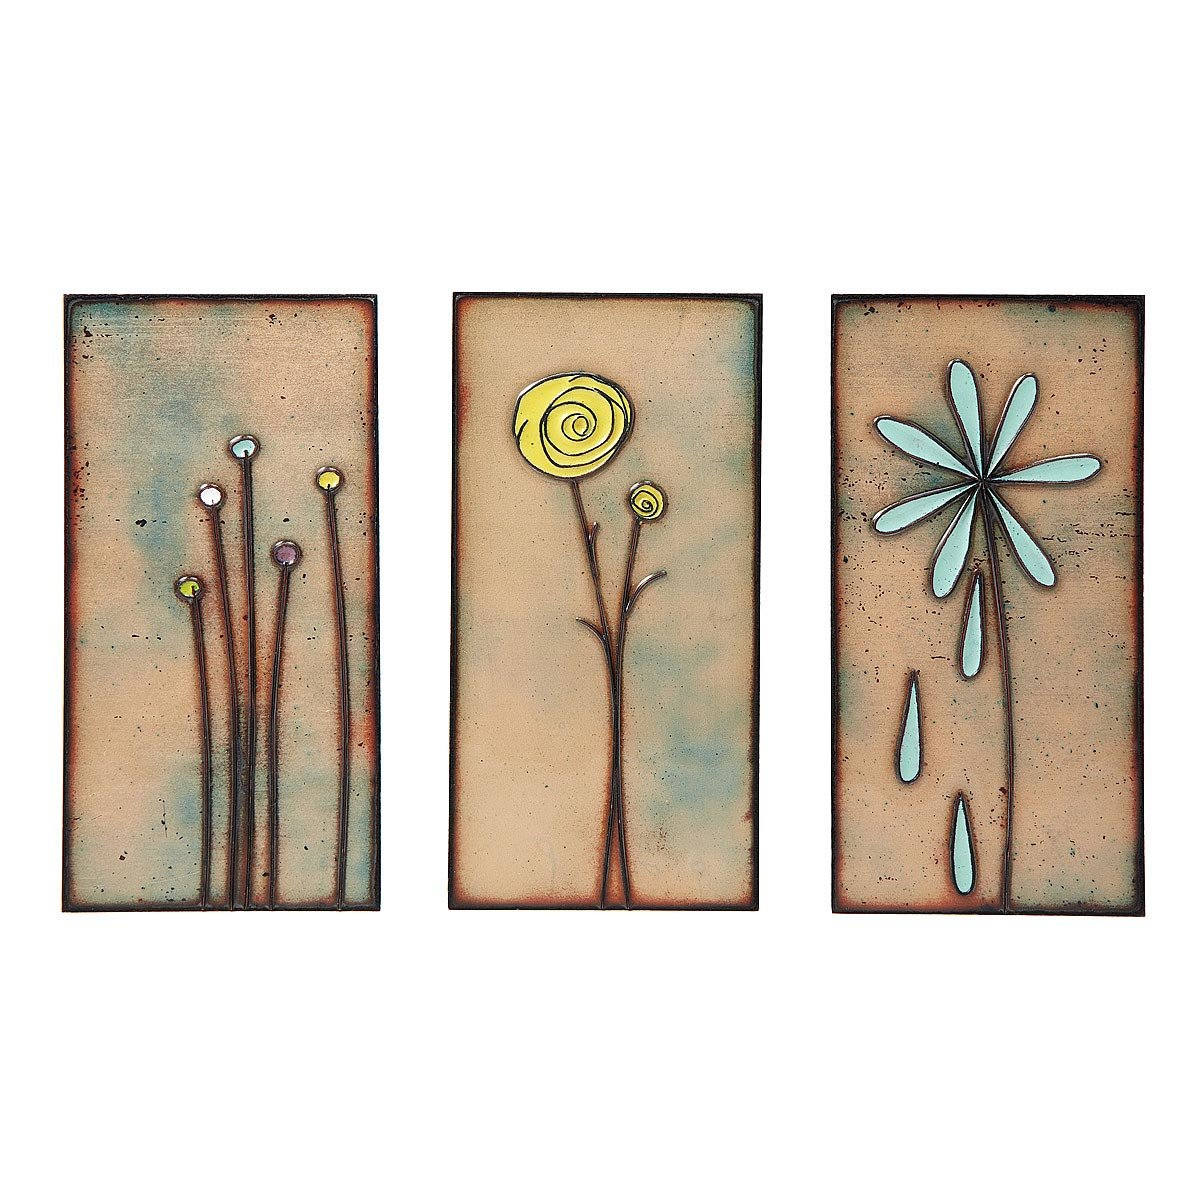 handmade copper wall flowers - Home Decor Accents